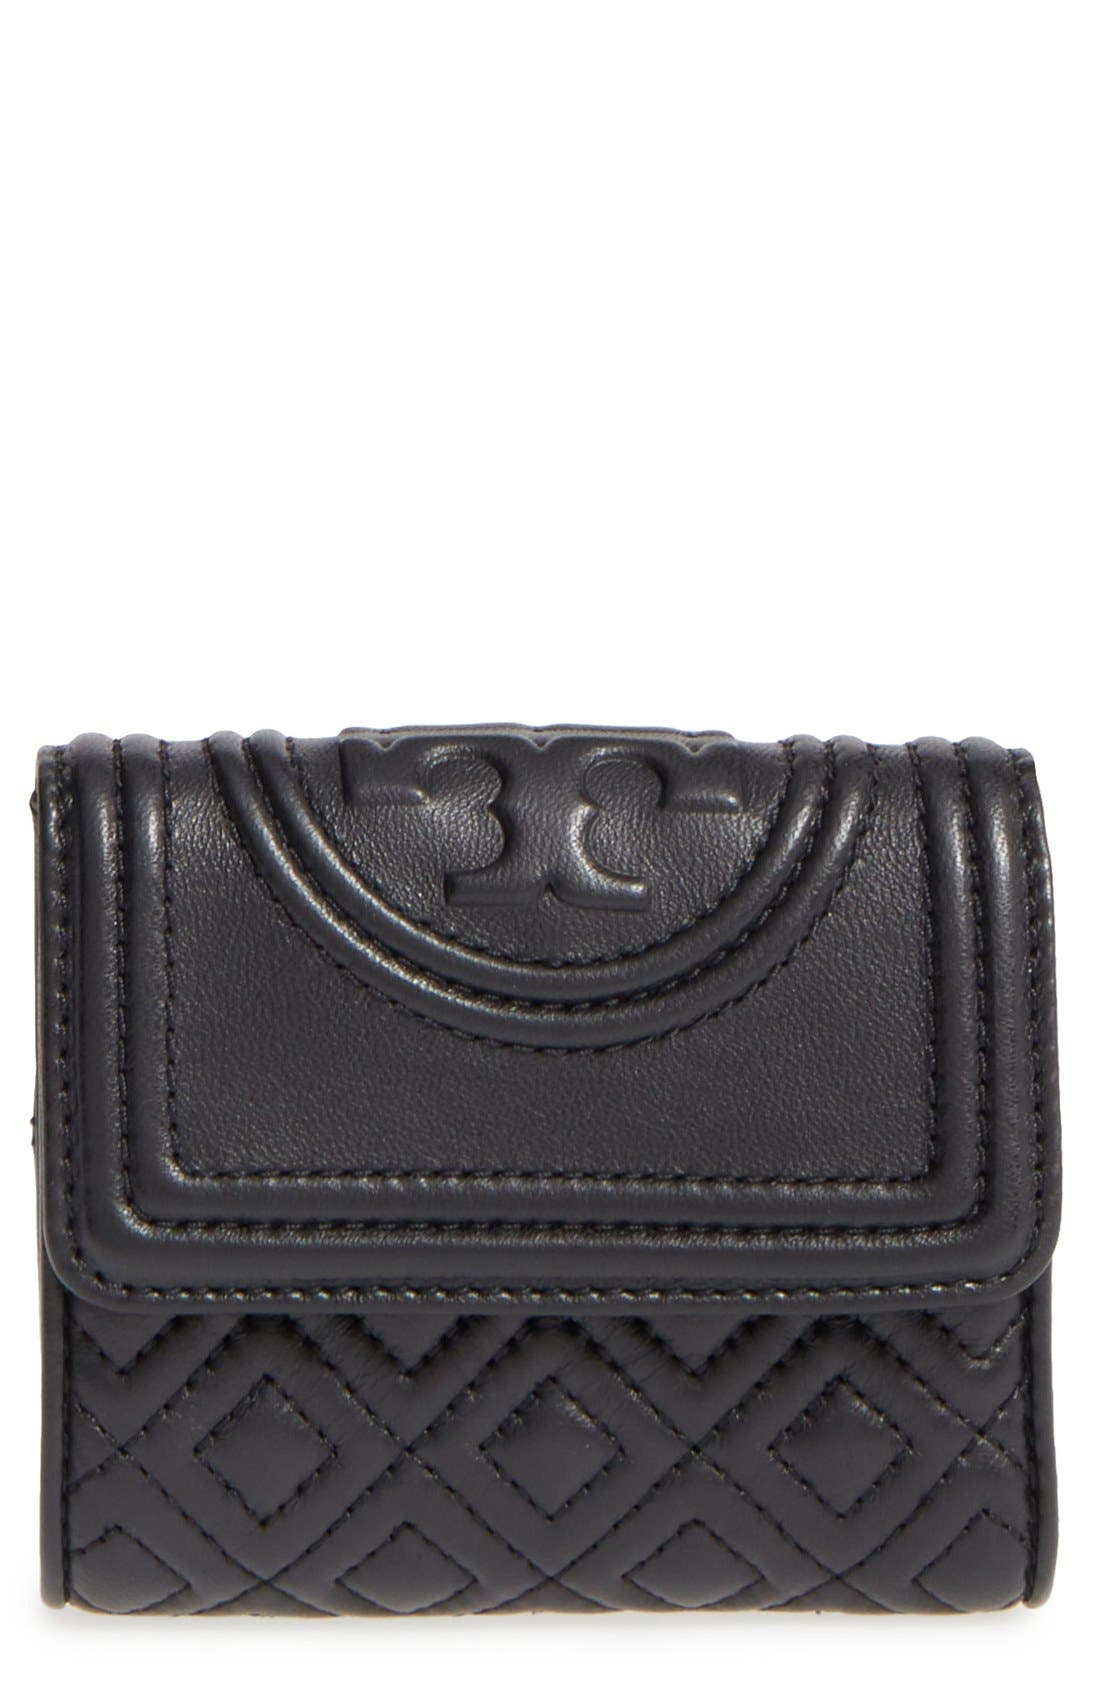 Main Image - Tory Burch 'Mini Fleming' Quilted Lambskin Leather Wallet